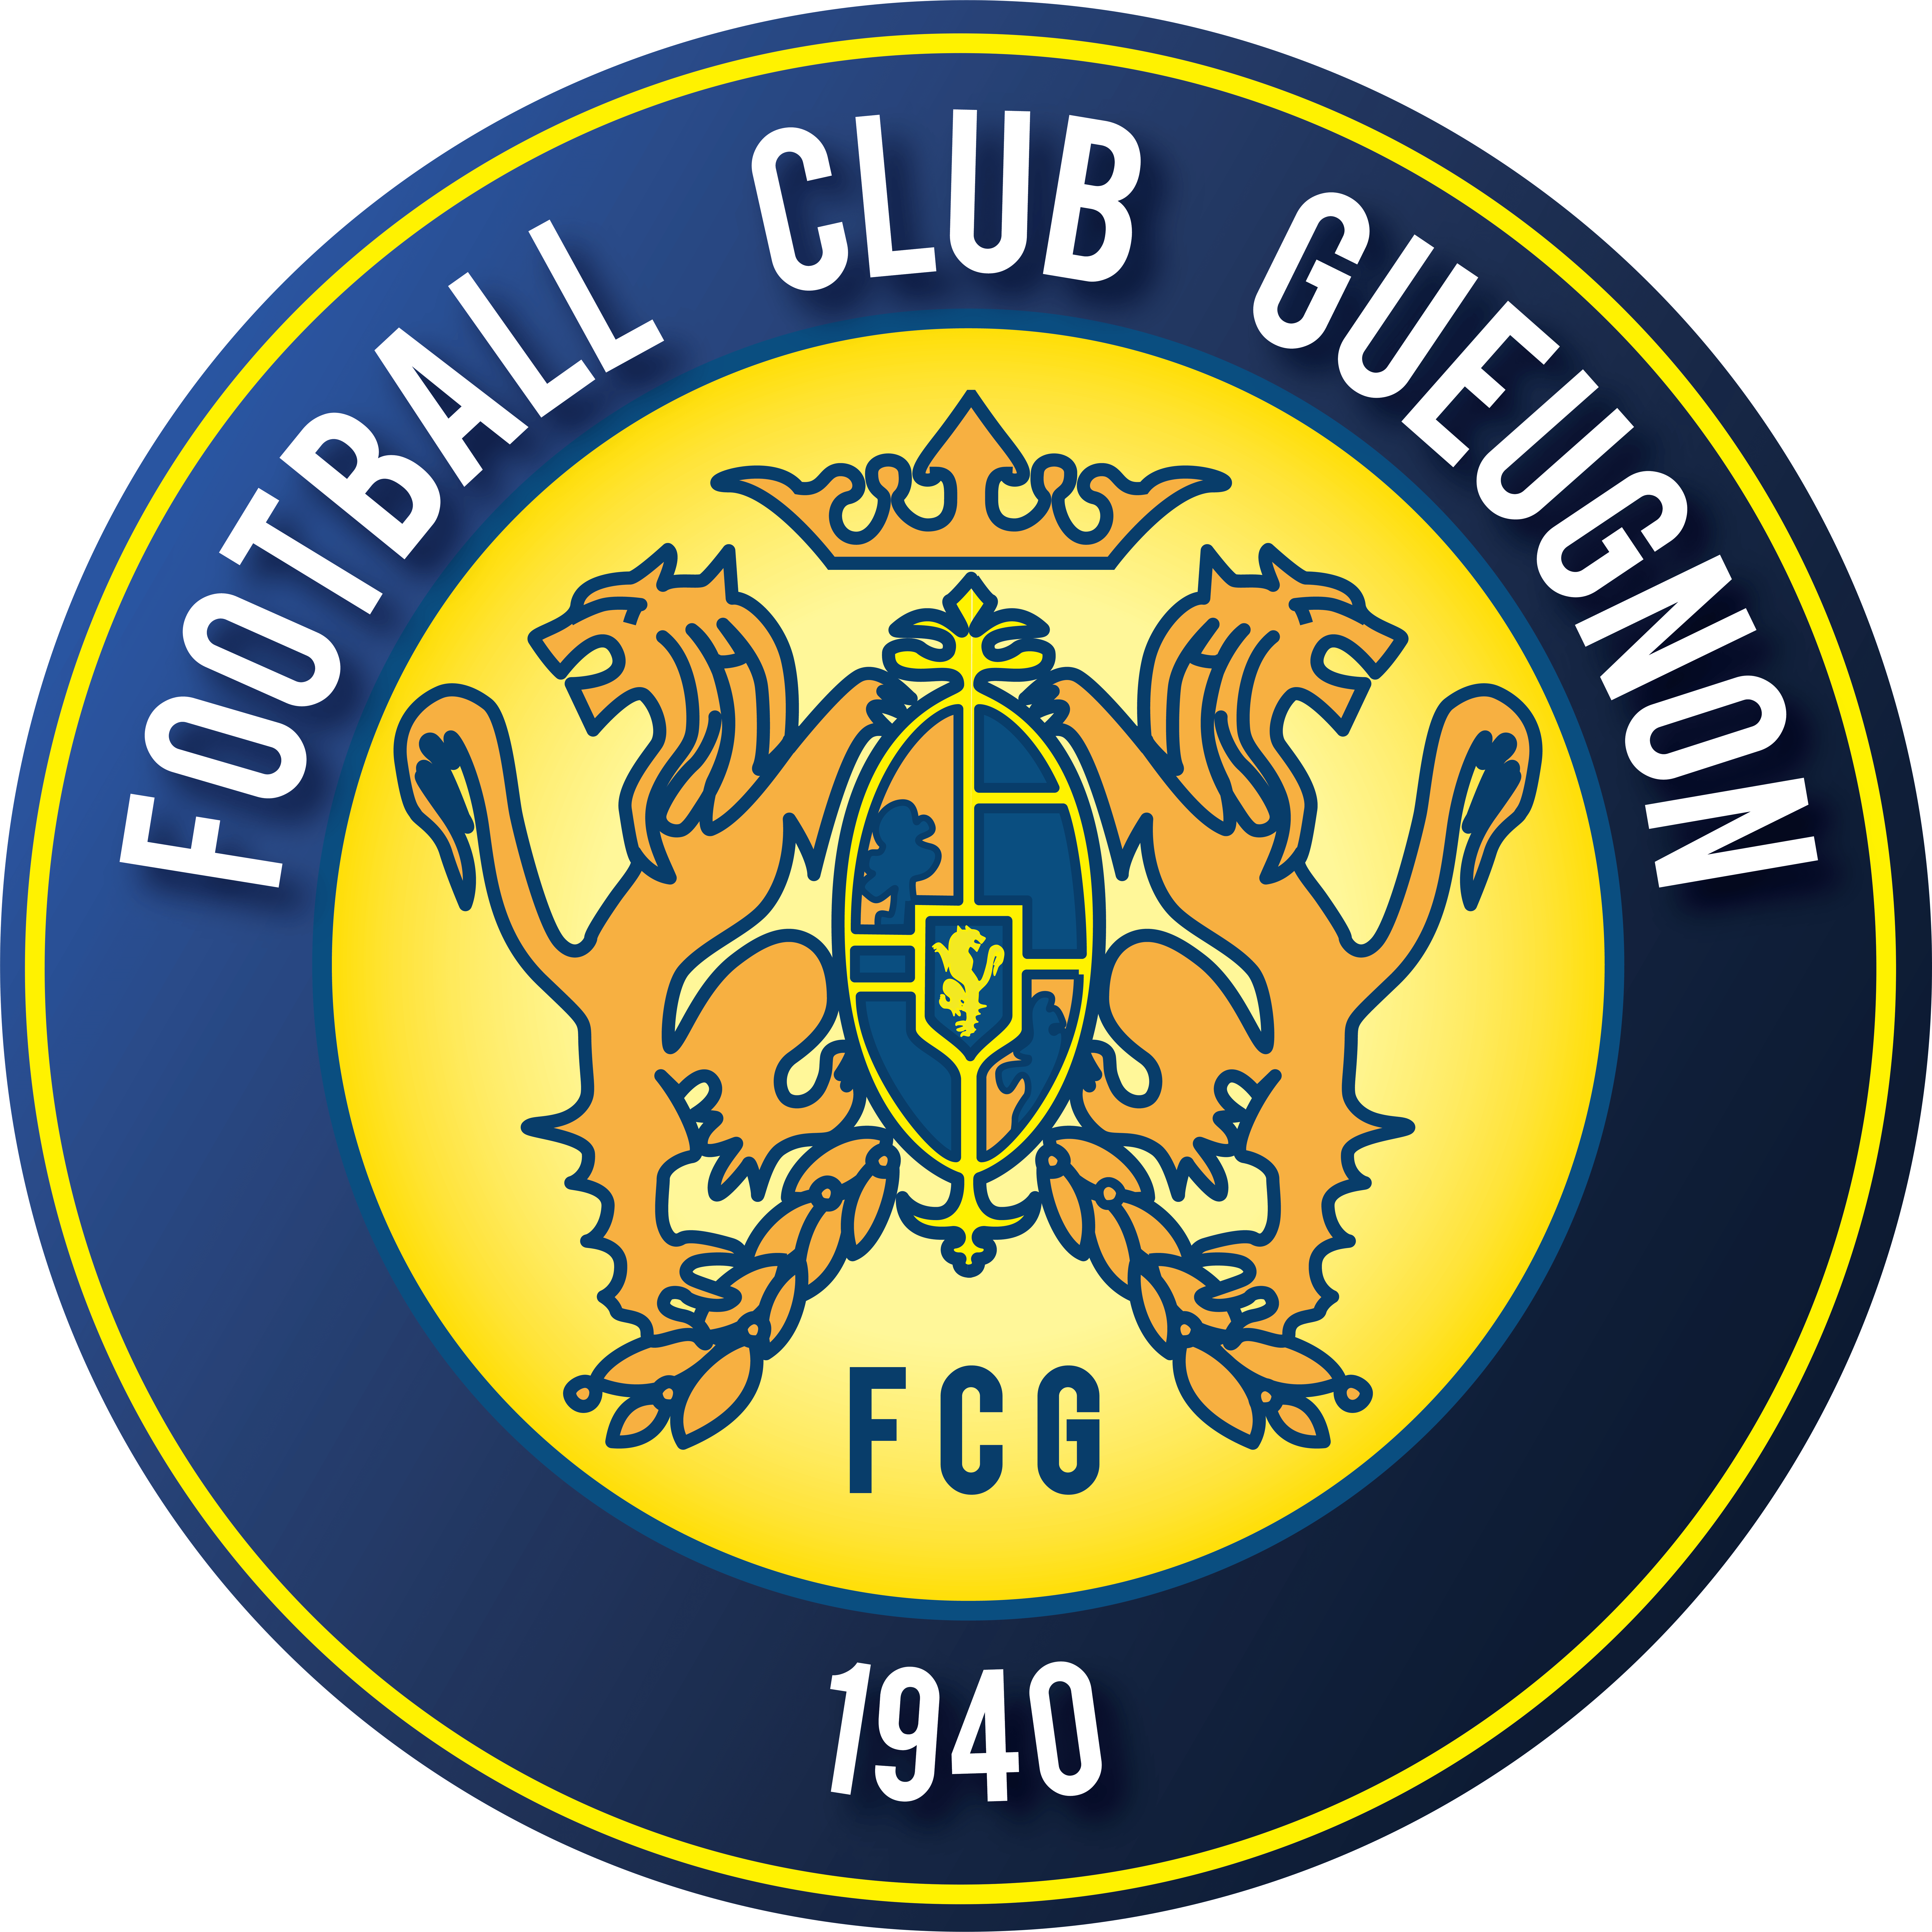 FOOTBALL CLUB GUEUGNON